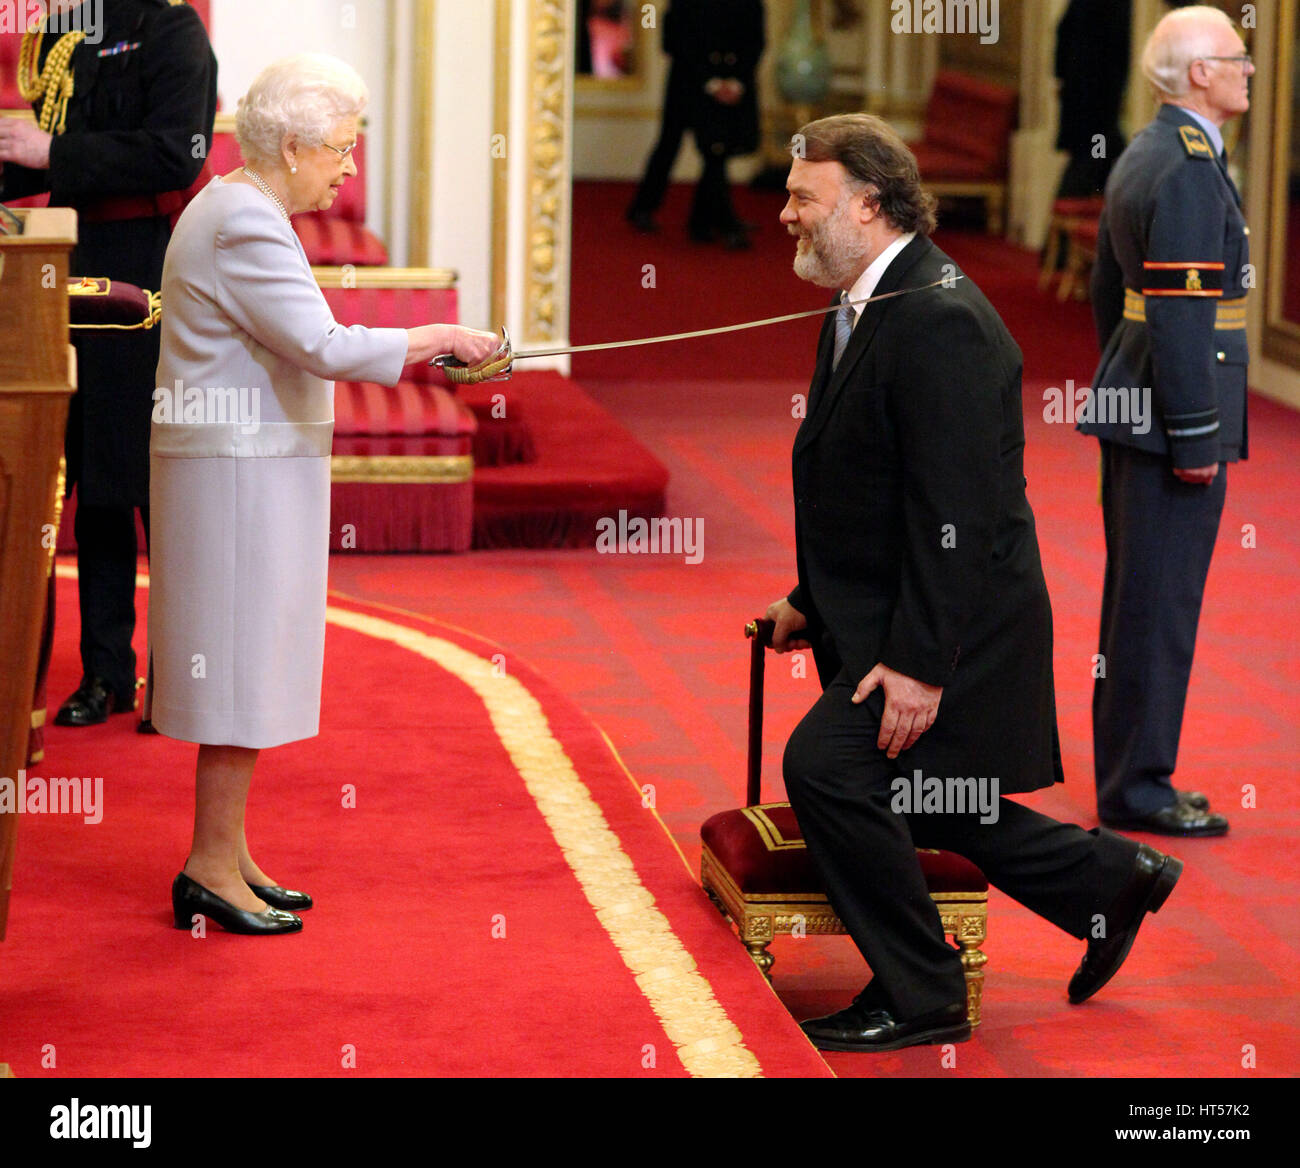 Sir Bryn Terfel Jones from London is made a Knight Bachelor of the British Empire by Queen Elizabeth II at Buckingham Palace.